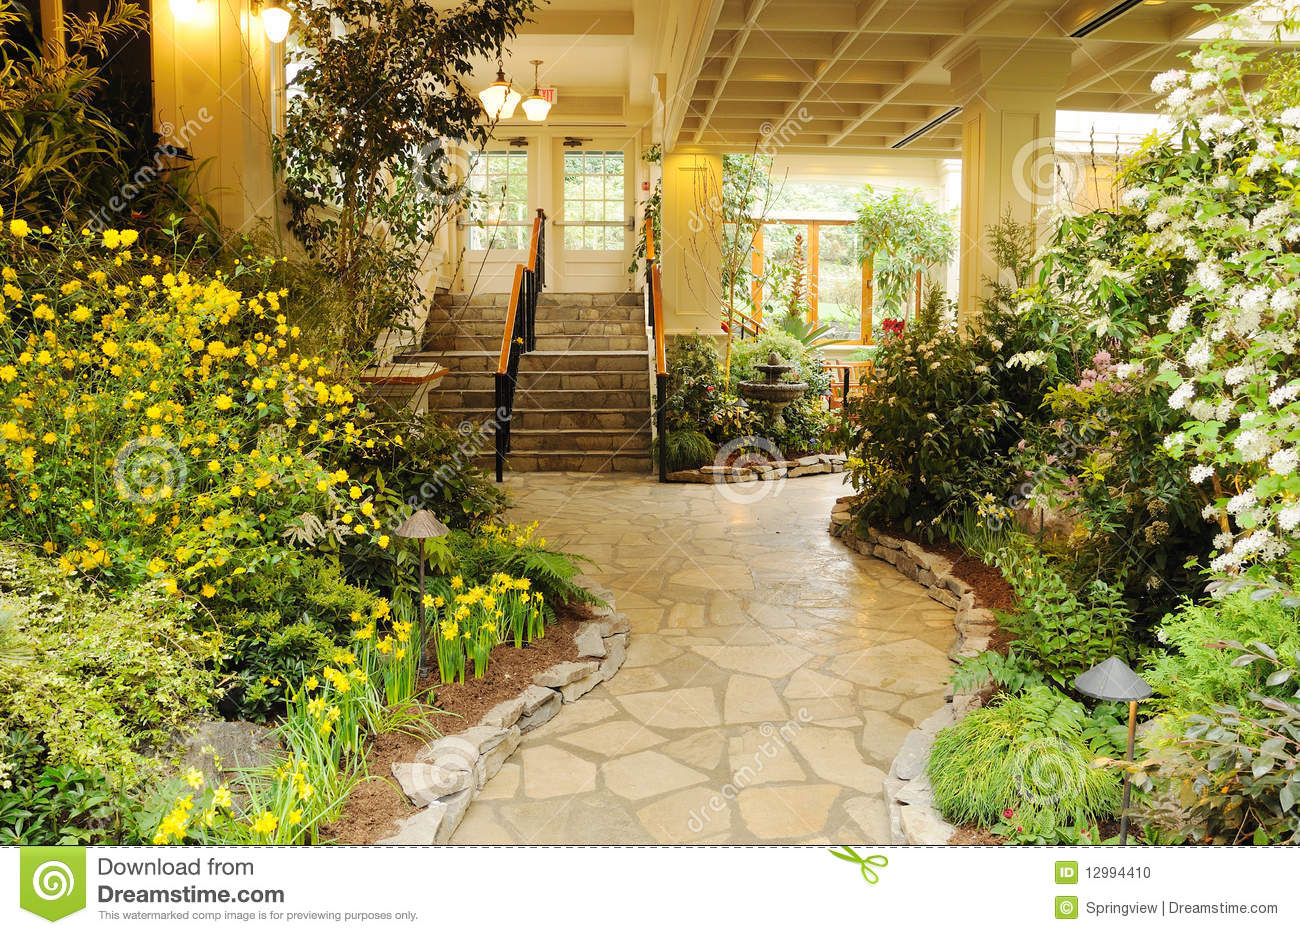 Jardin d 39 int rieur photo stock image 12994410 for Jardin d interieur